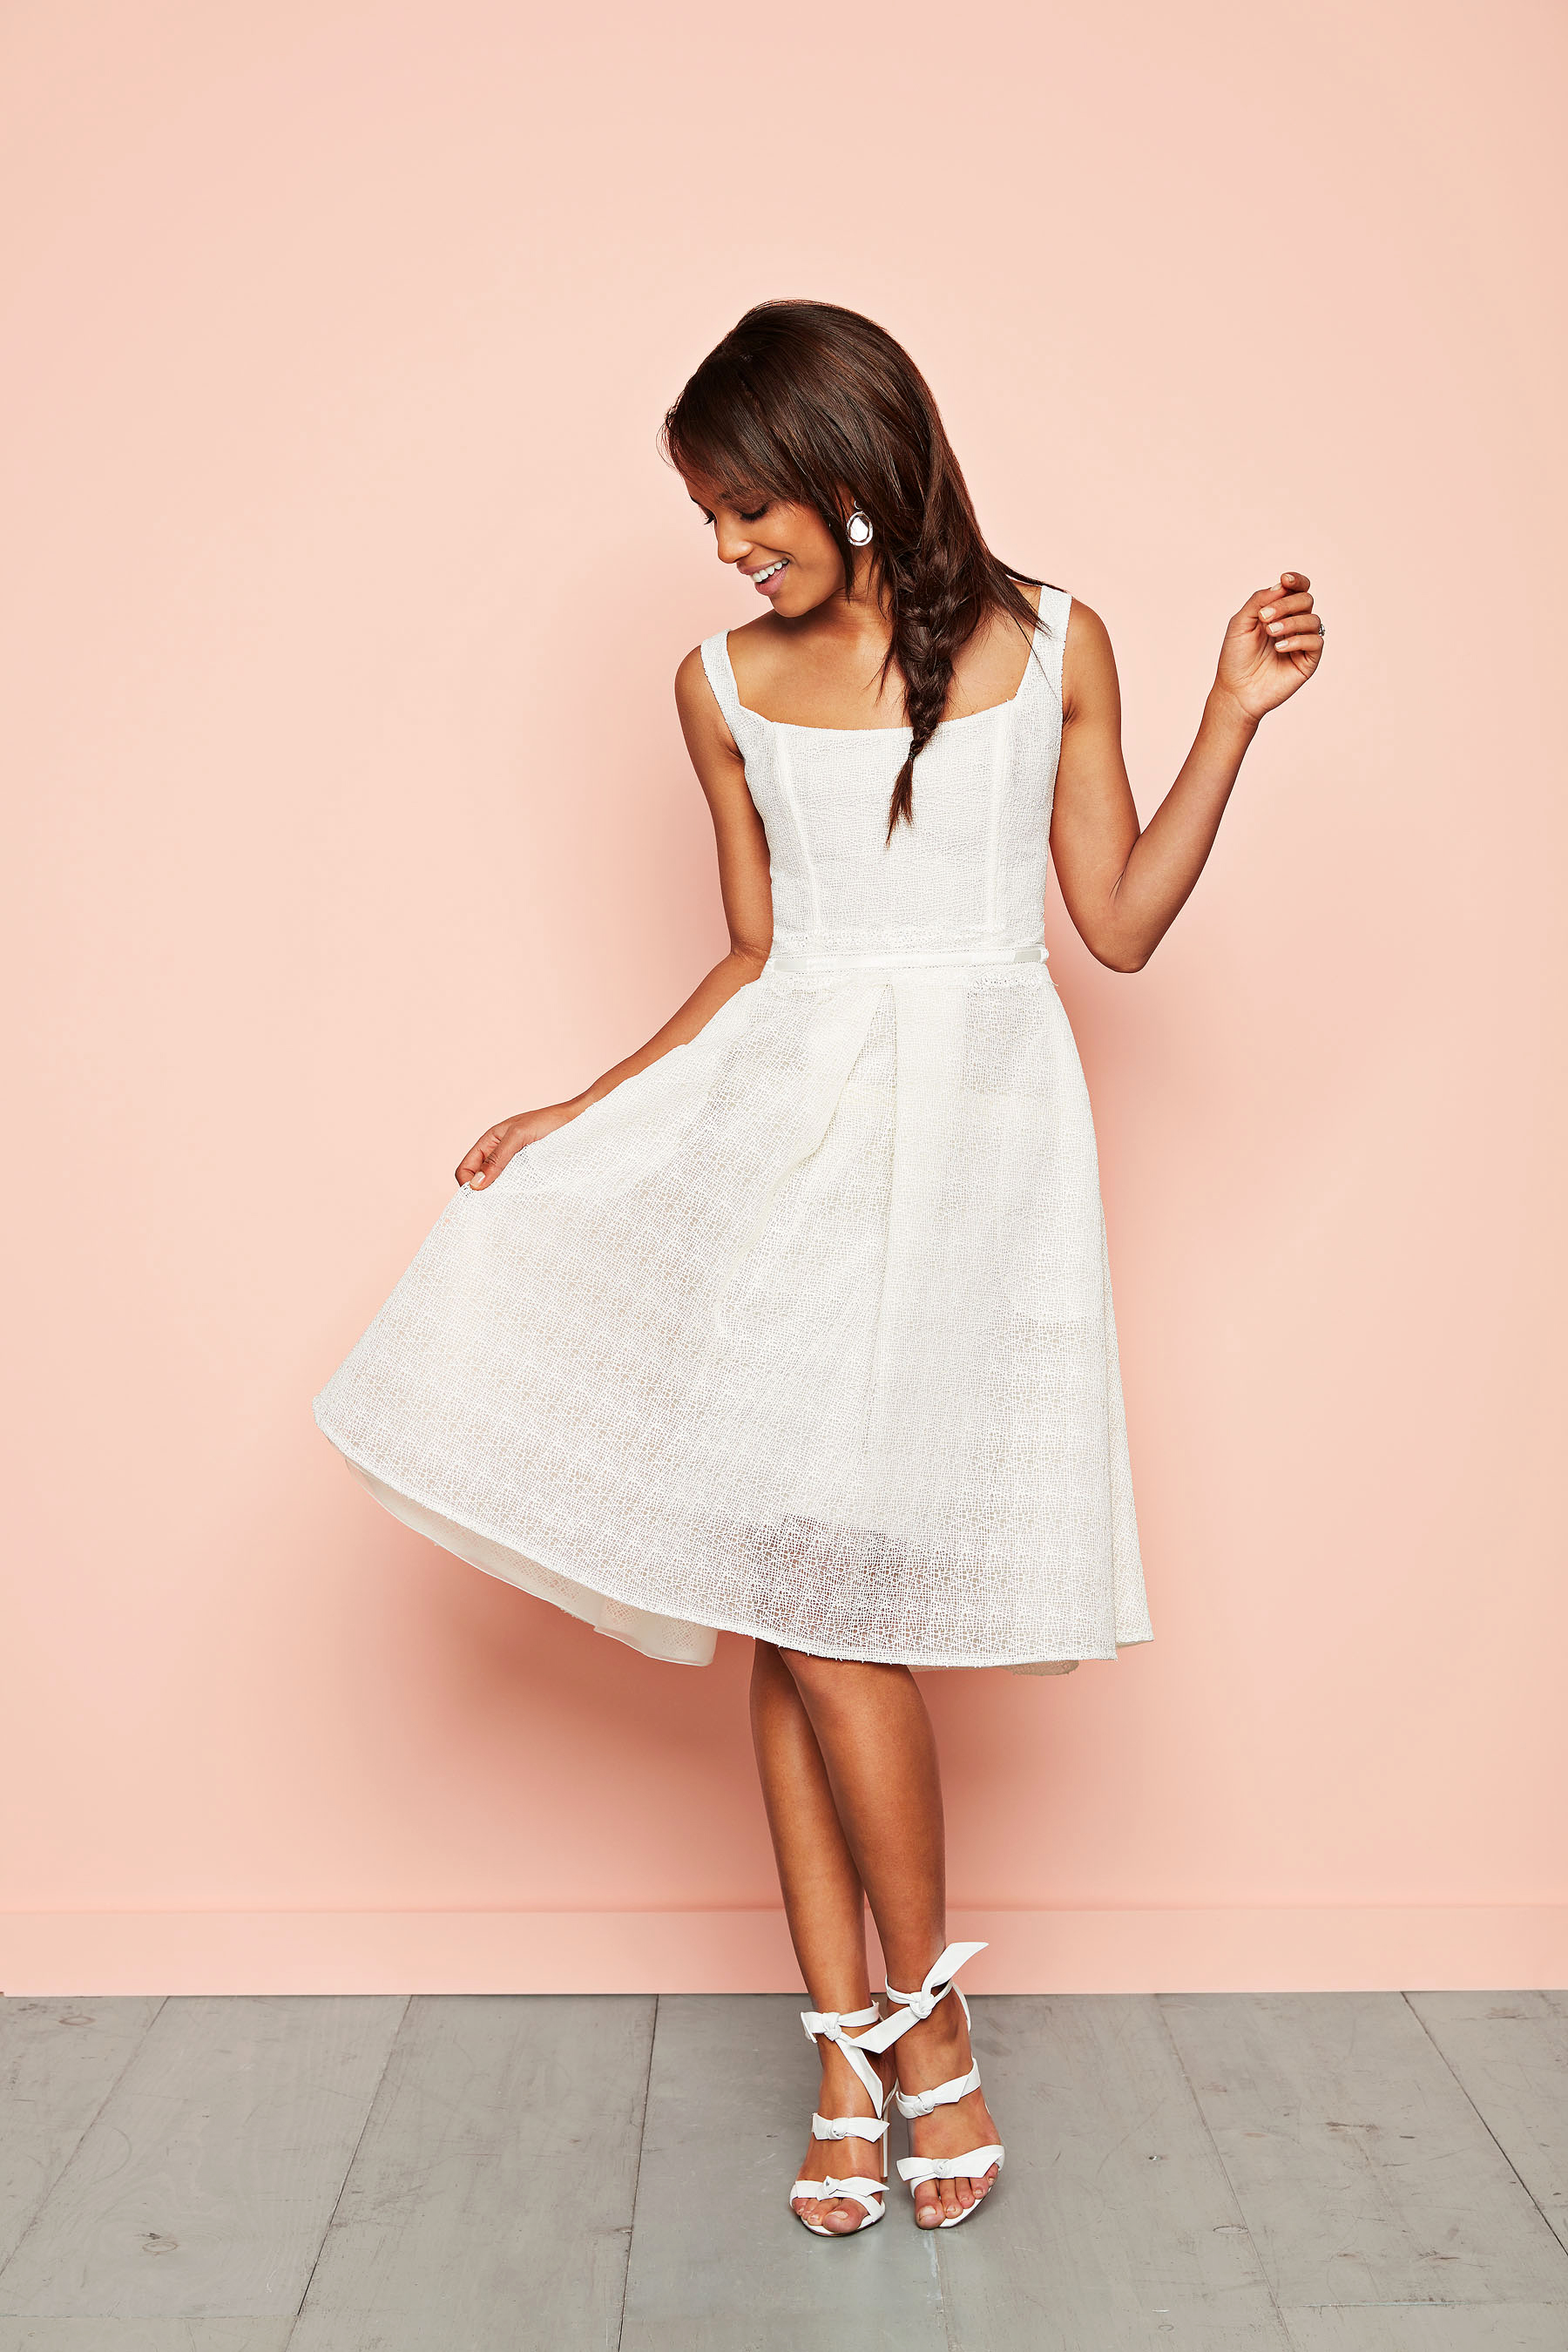 white flare dress knotted sandals cymbeline